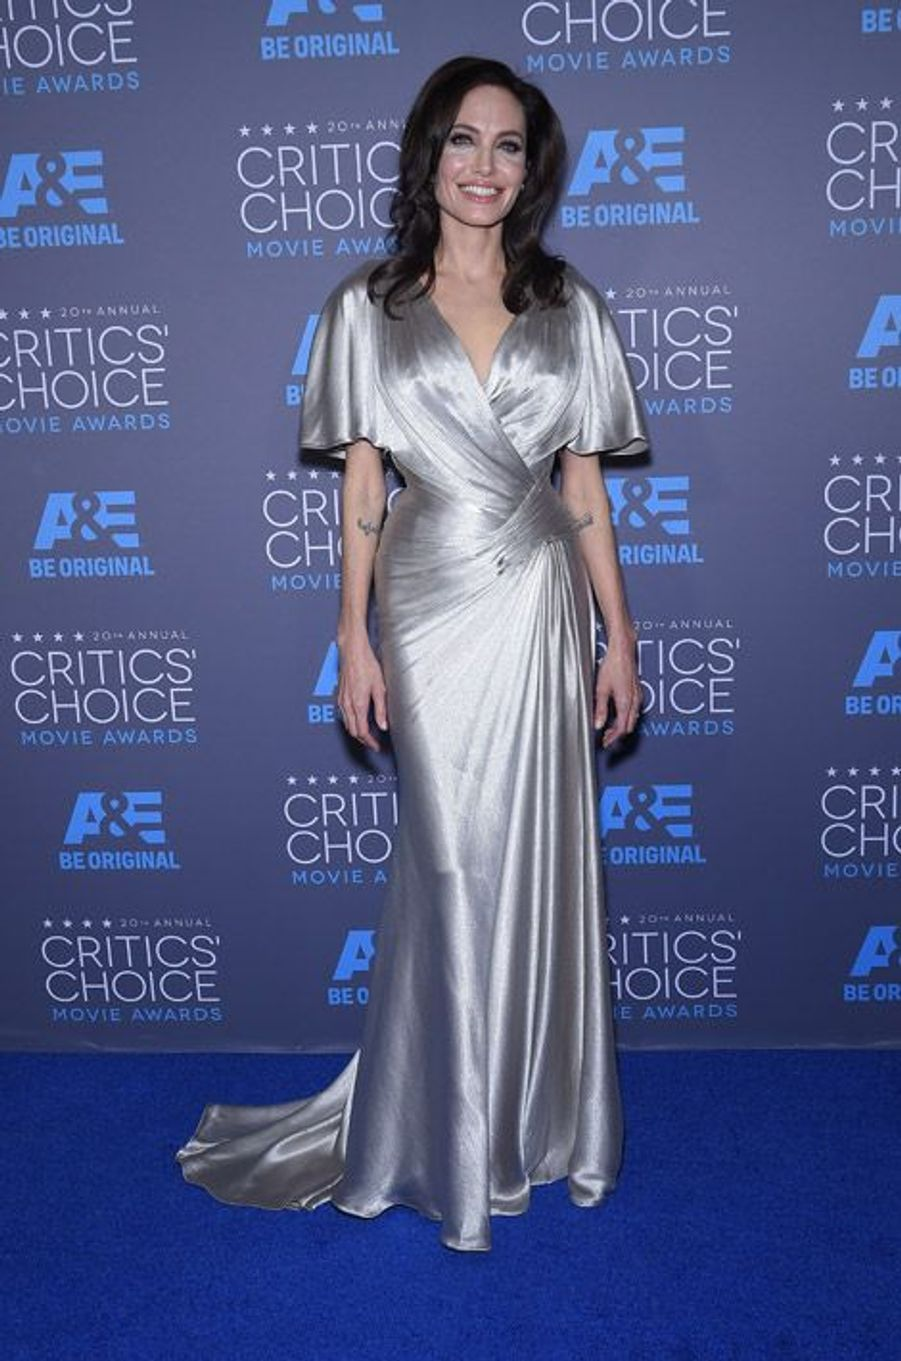 Angelina Jolie en Atelier Versace lors de la cérémonie des Critics Choice Movie Awards à Los Angeles, le 15 janvier 2015